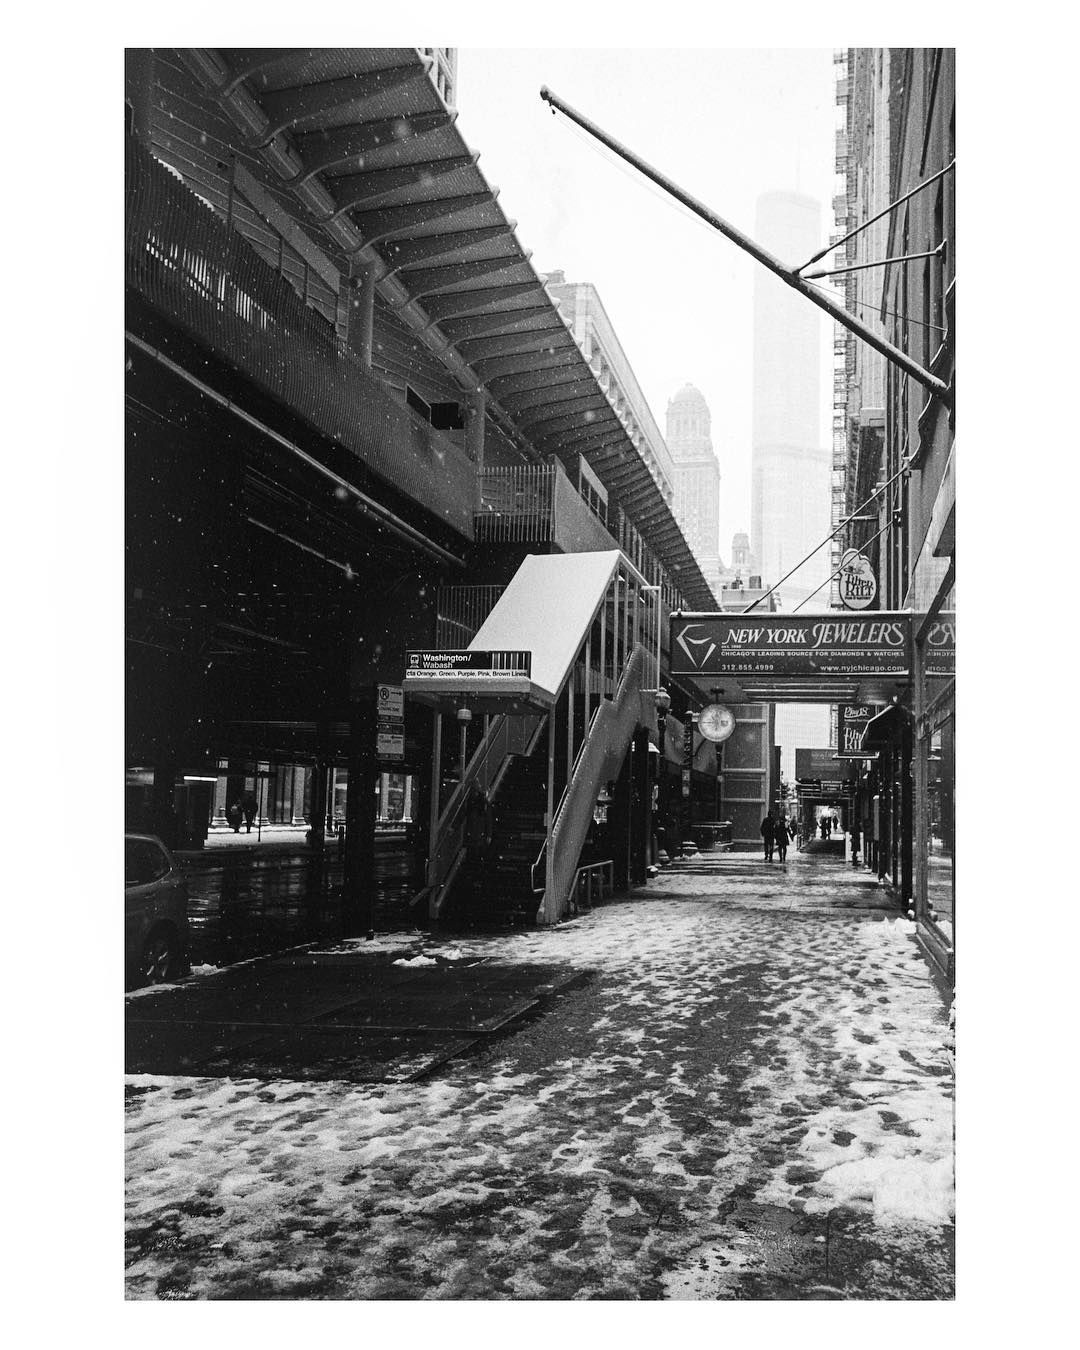 Trix400 hashtag on instagram • photos and videos